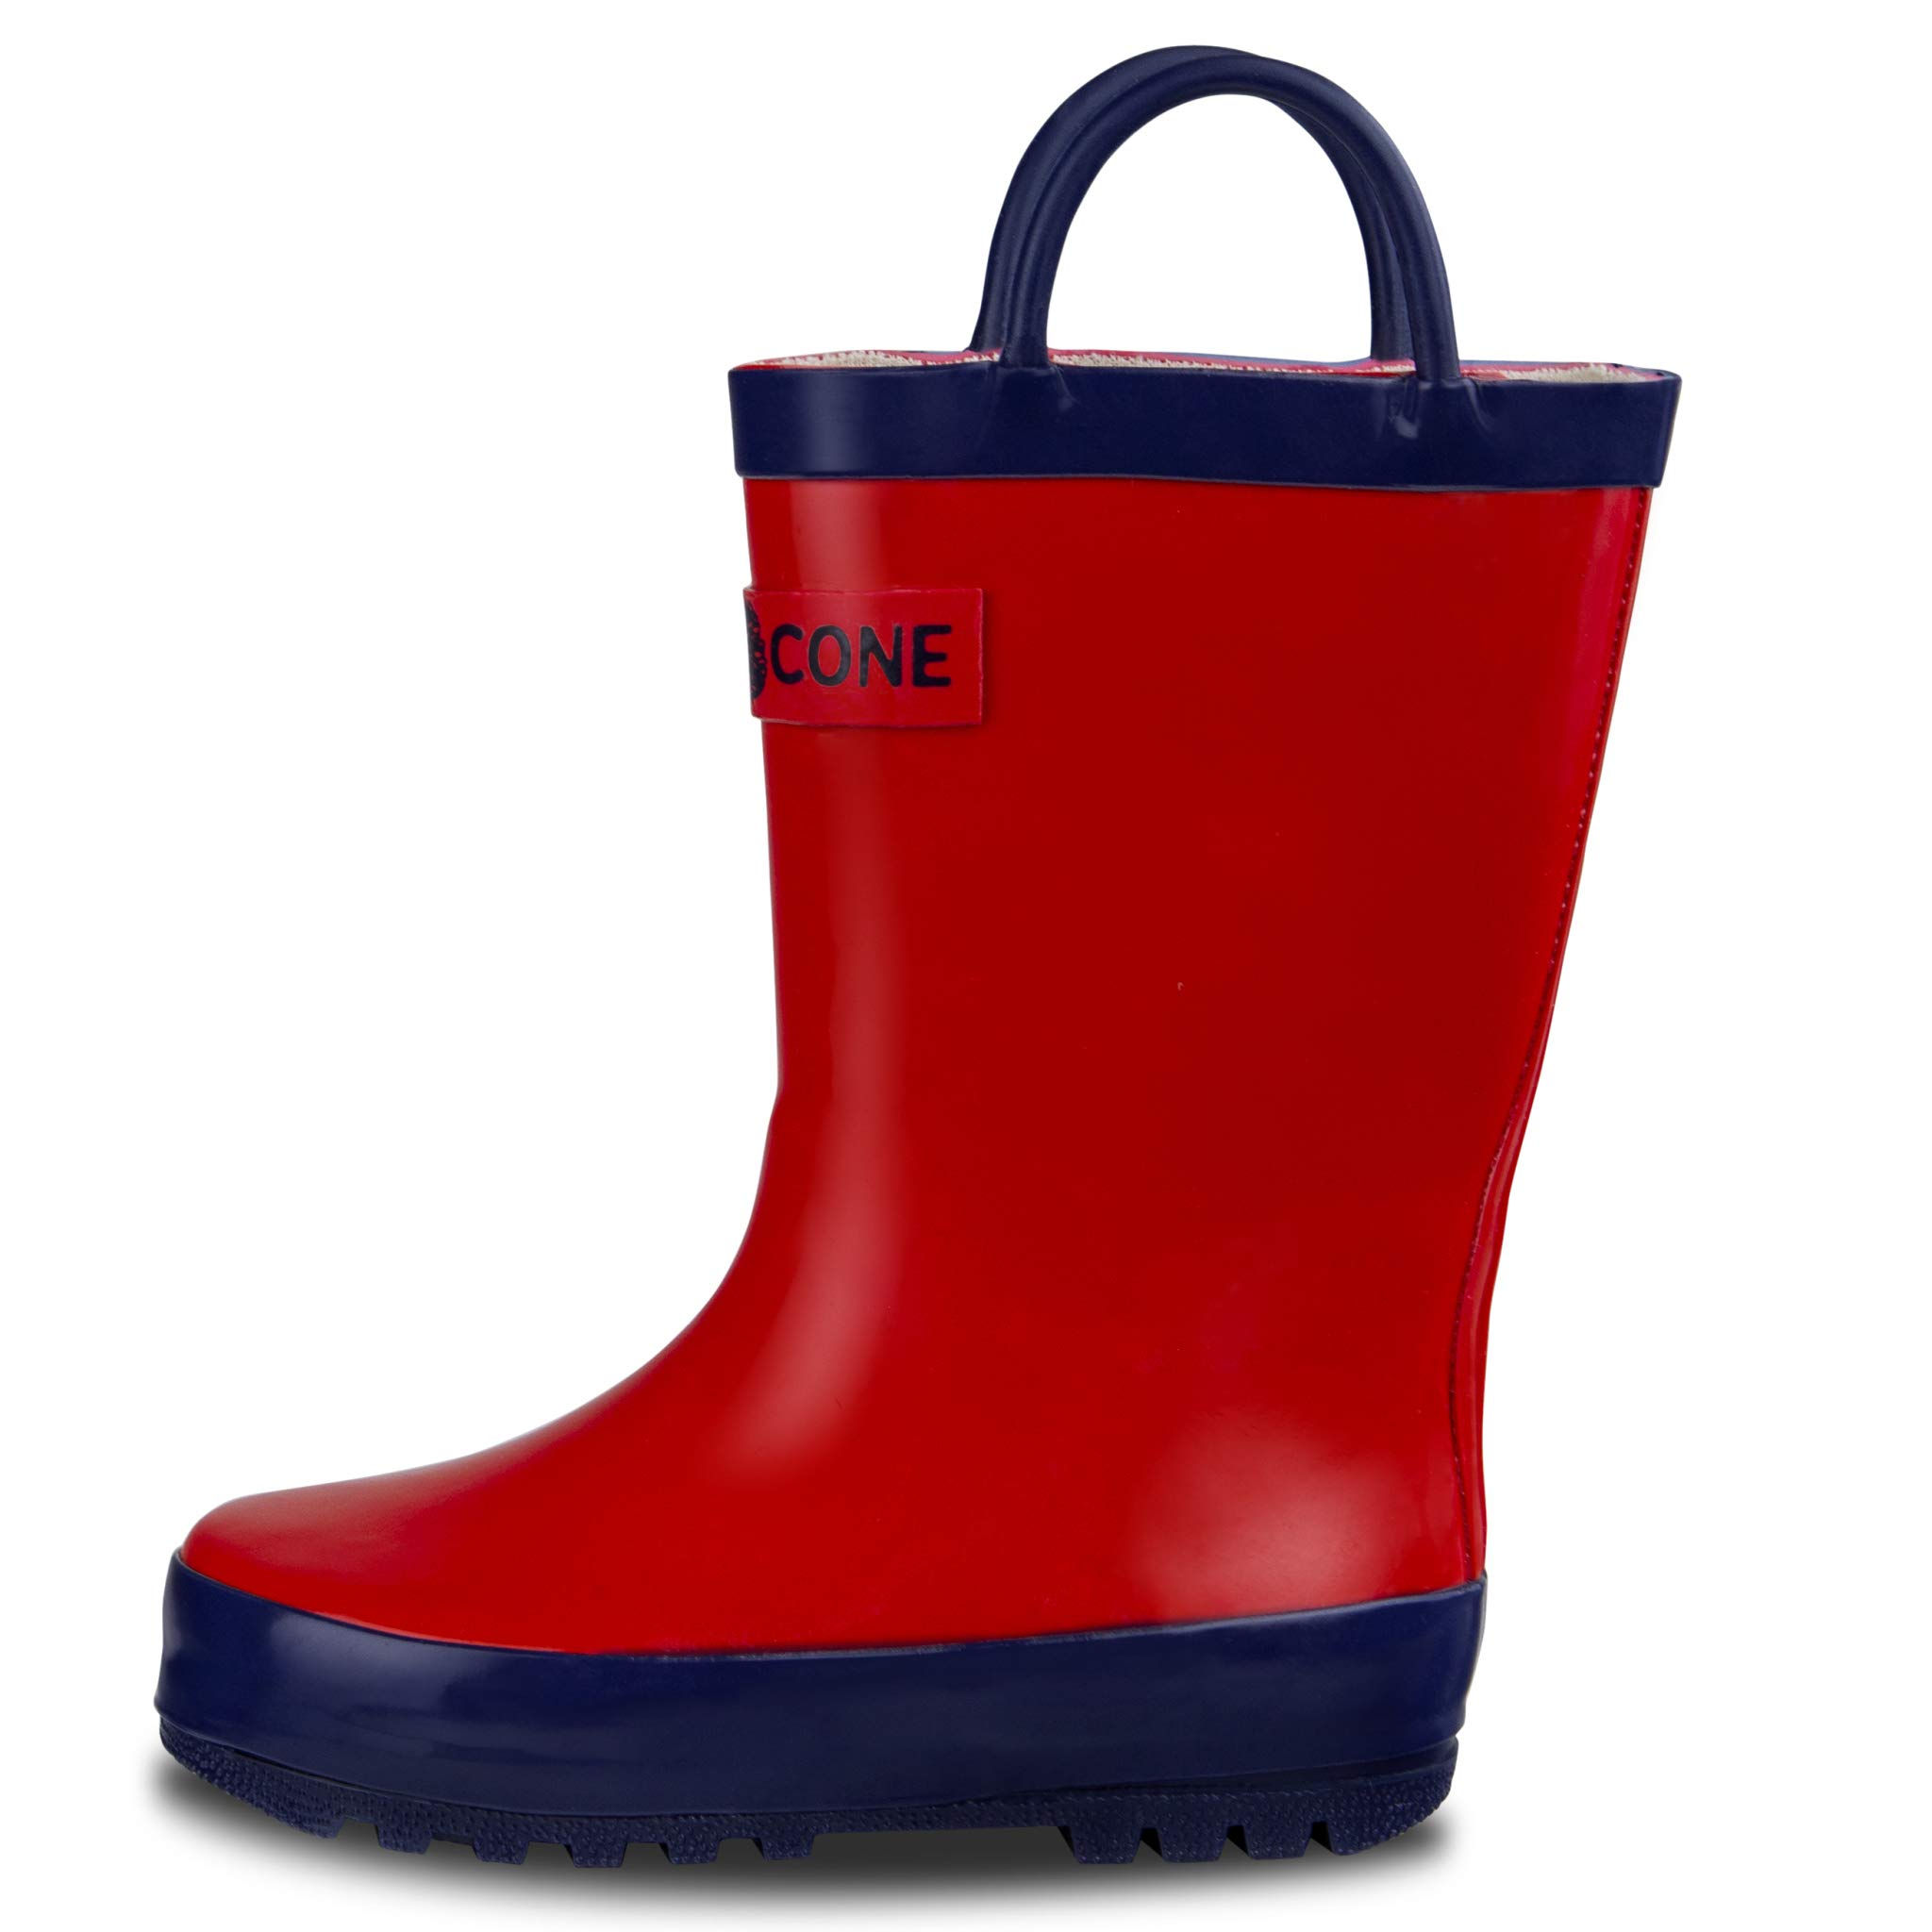 LONECONE Rain Boots with Easy-On Handles for Toddlers and Kids, Firetruck Red, Toddler 6